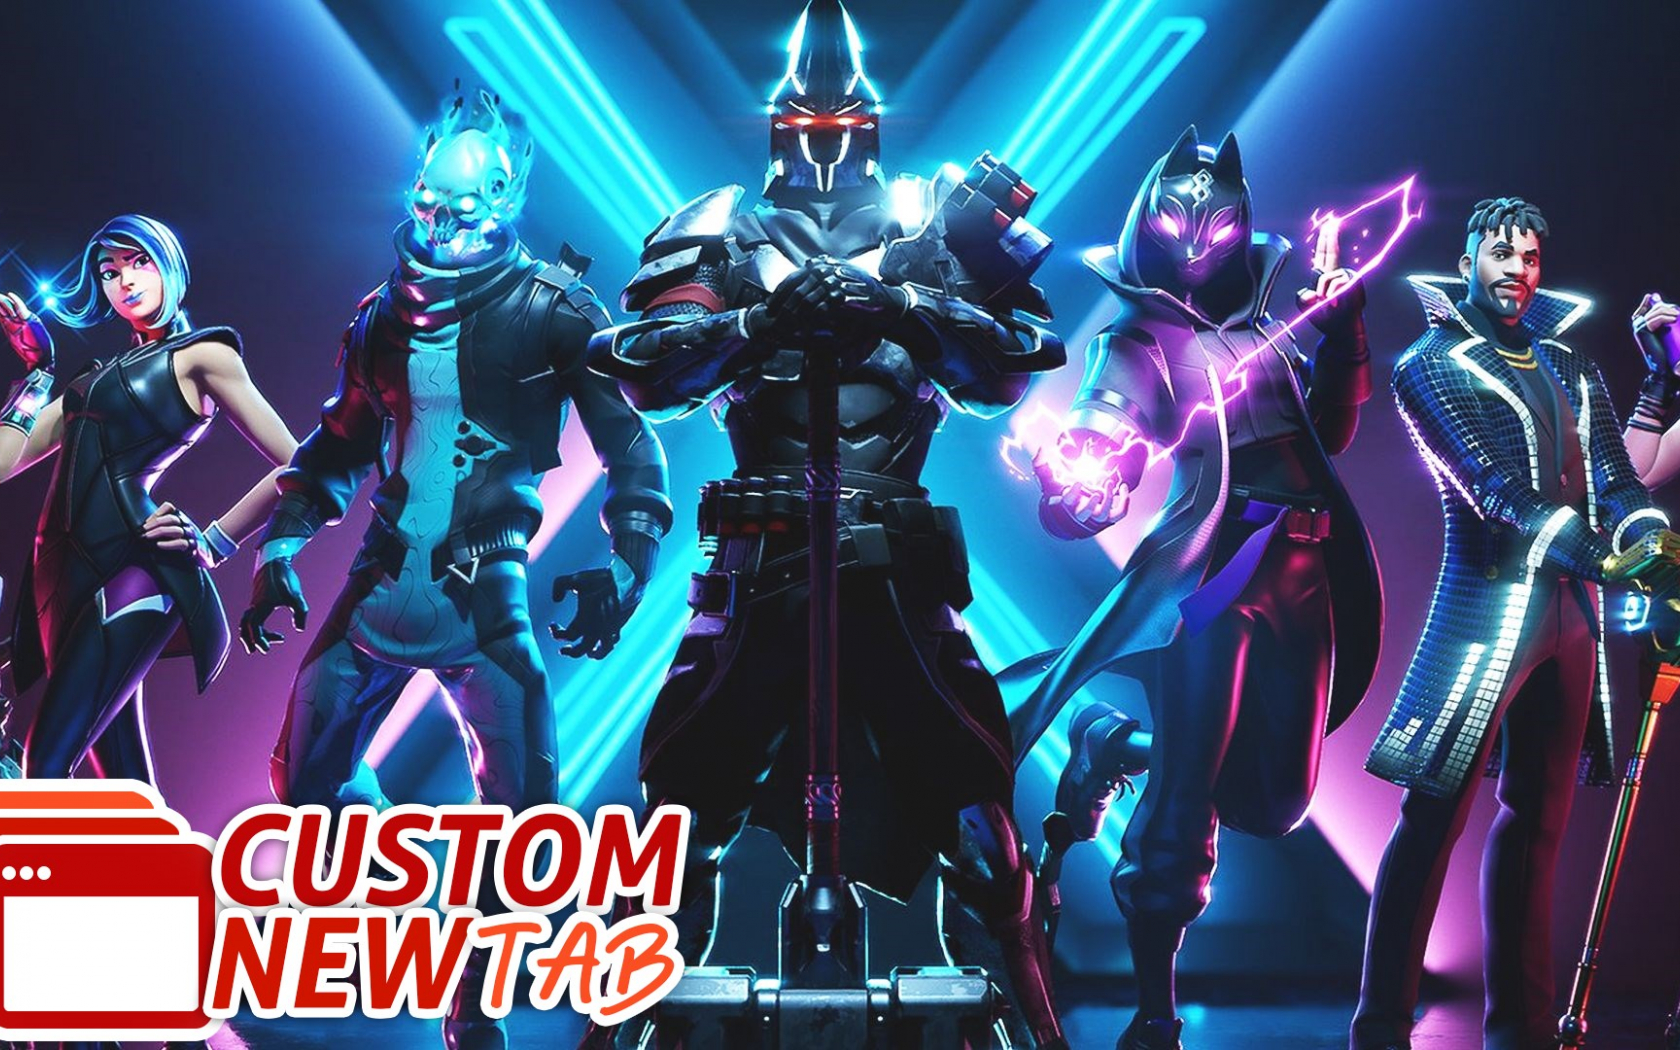 Free Download Fortnite Season 10 Wallpaper New Tab Chrome New Tabsy 19x1080 For Your Desktop Mobile Tablet Explore Fortnite Season 10 Wallpapers Fortnite Season 10 Wallpapers Fortnite Season 6 Wallpapers Fortnite Season 8 Wallpapers